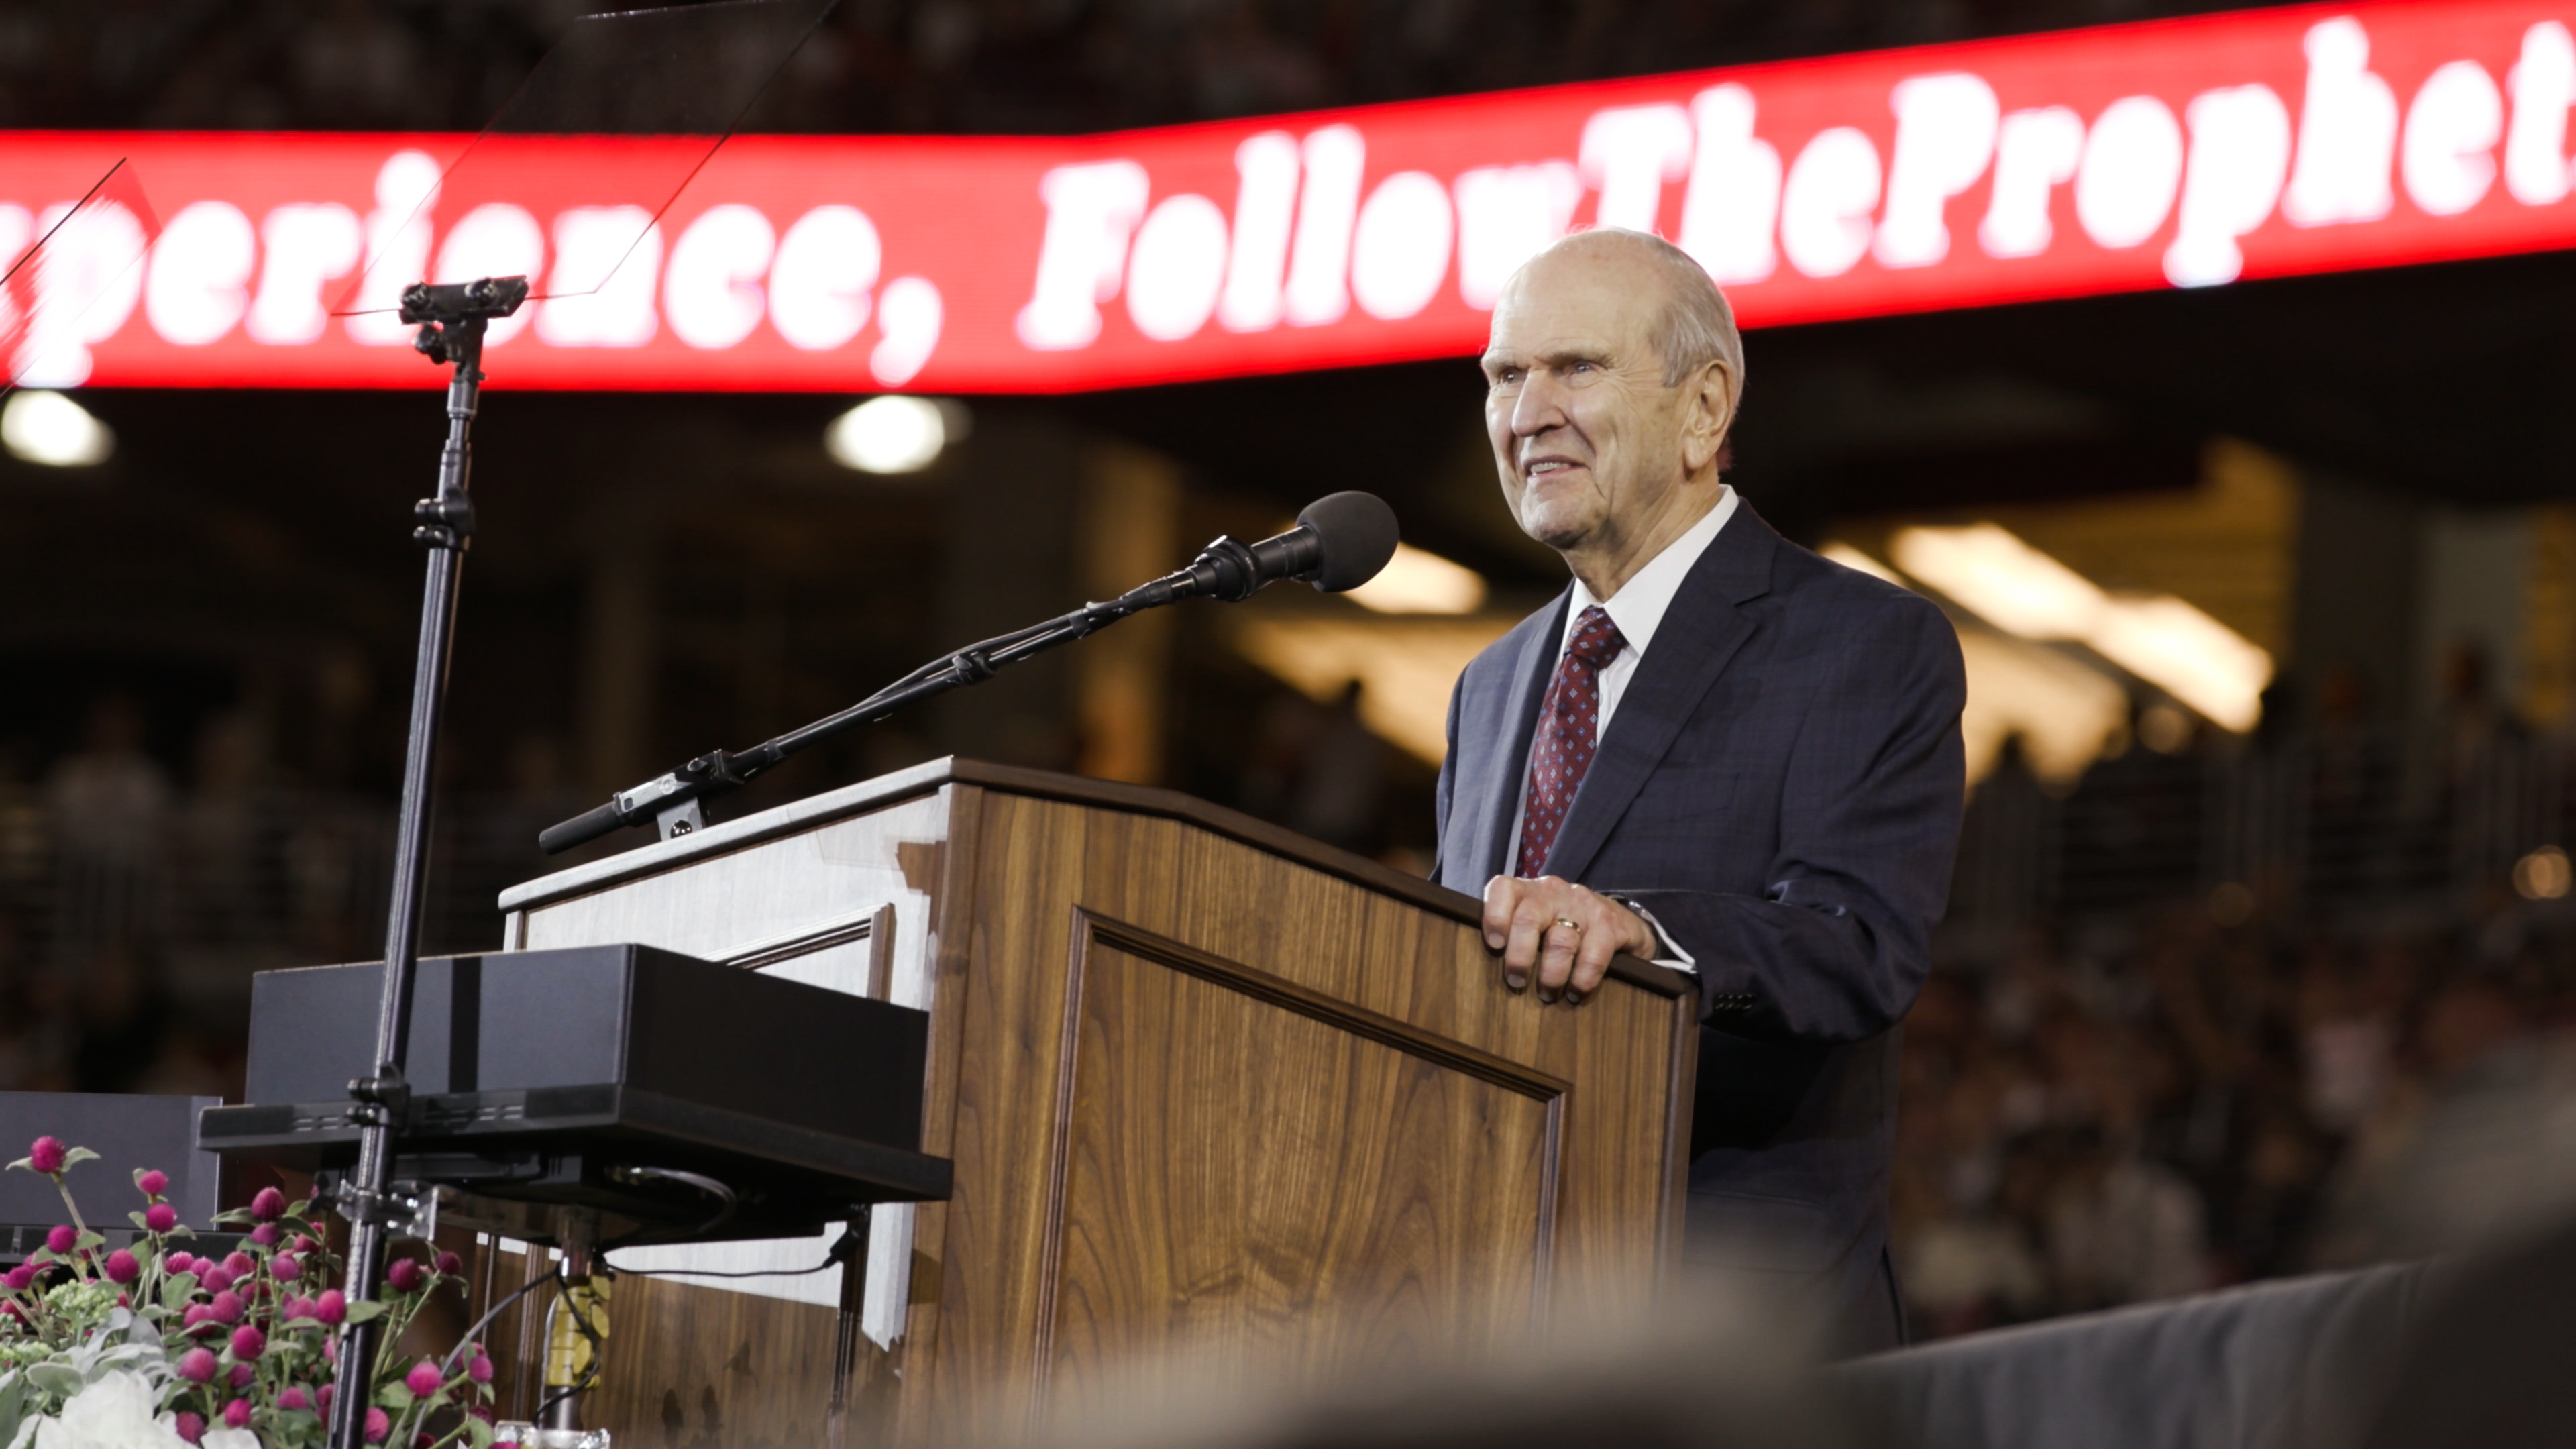 President Russell M. Nelson of The Church of Jesus Christ of Latter-day Saints speaks to attendees after speaking at the State Farm Stadium in Phoenix on Sunday, Feb. 10, 2019.